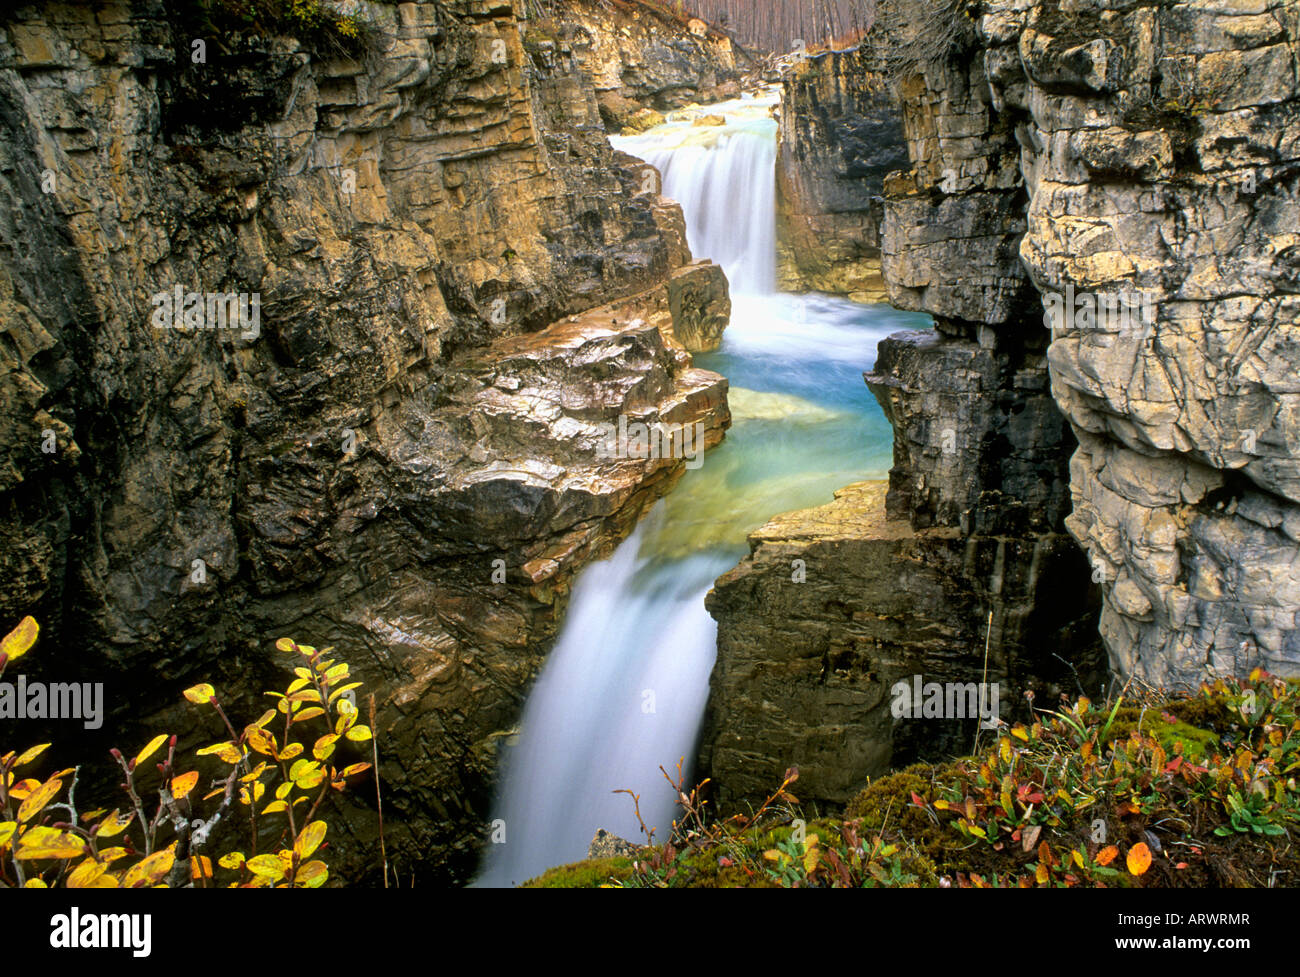 Waterfall tokkum creek marble canyon kootenay national park waterfall tokkum creek marble canyon kootenay national park british columbia canada sciox Image collections